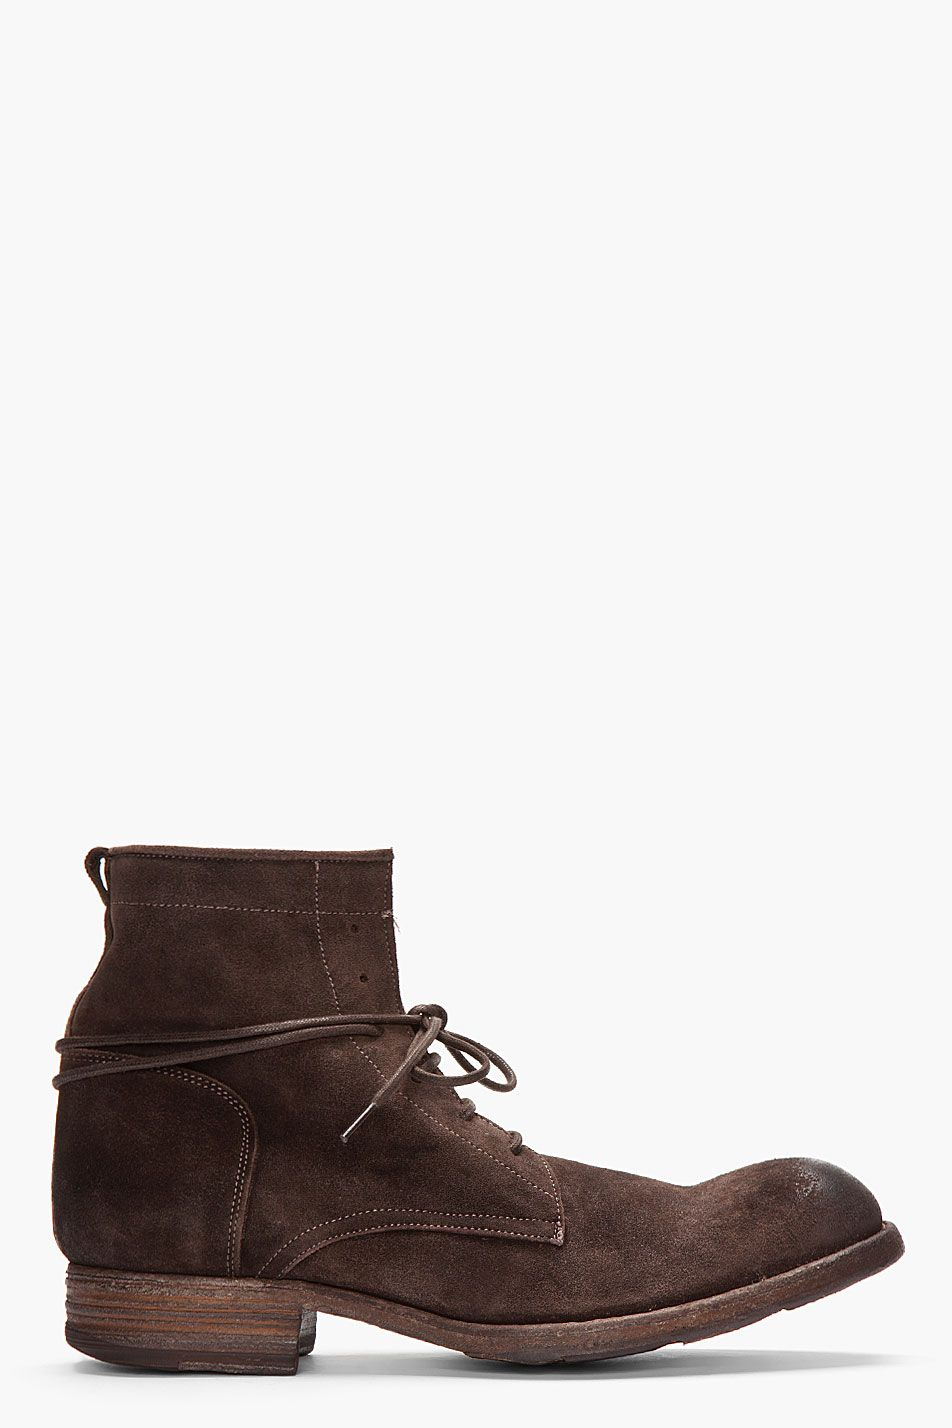 Officine Creative Brown Distressed Suede Shine Boots for men